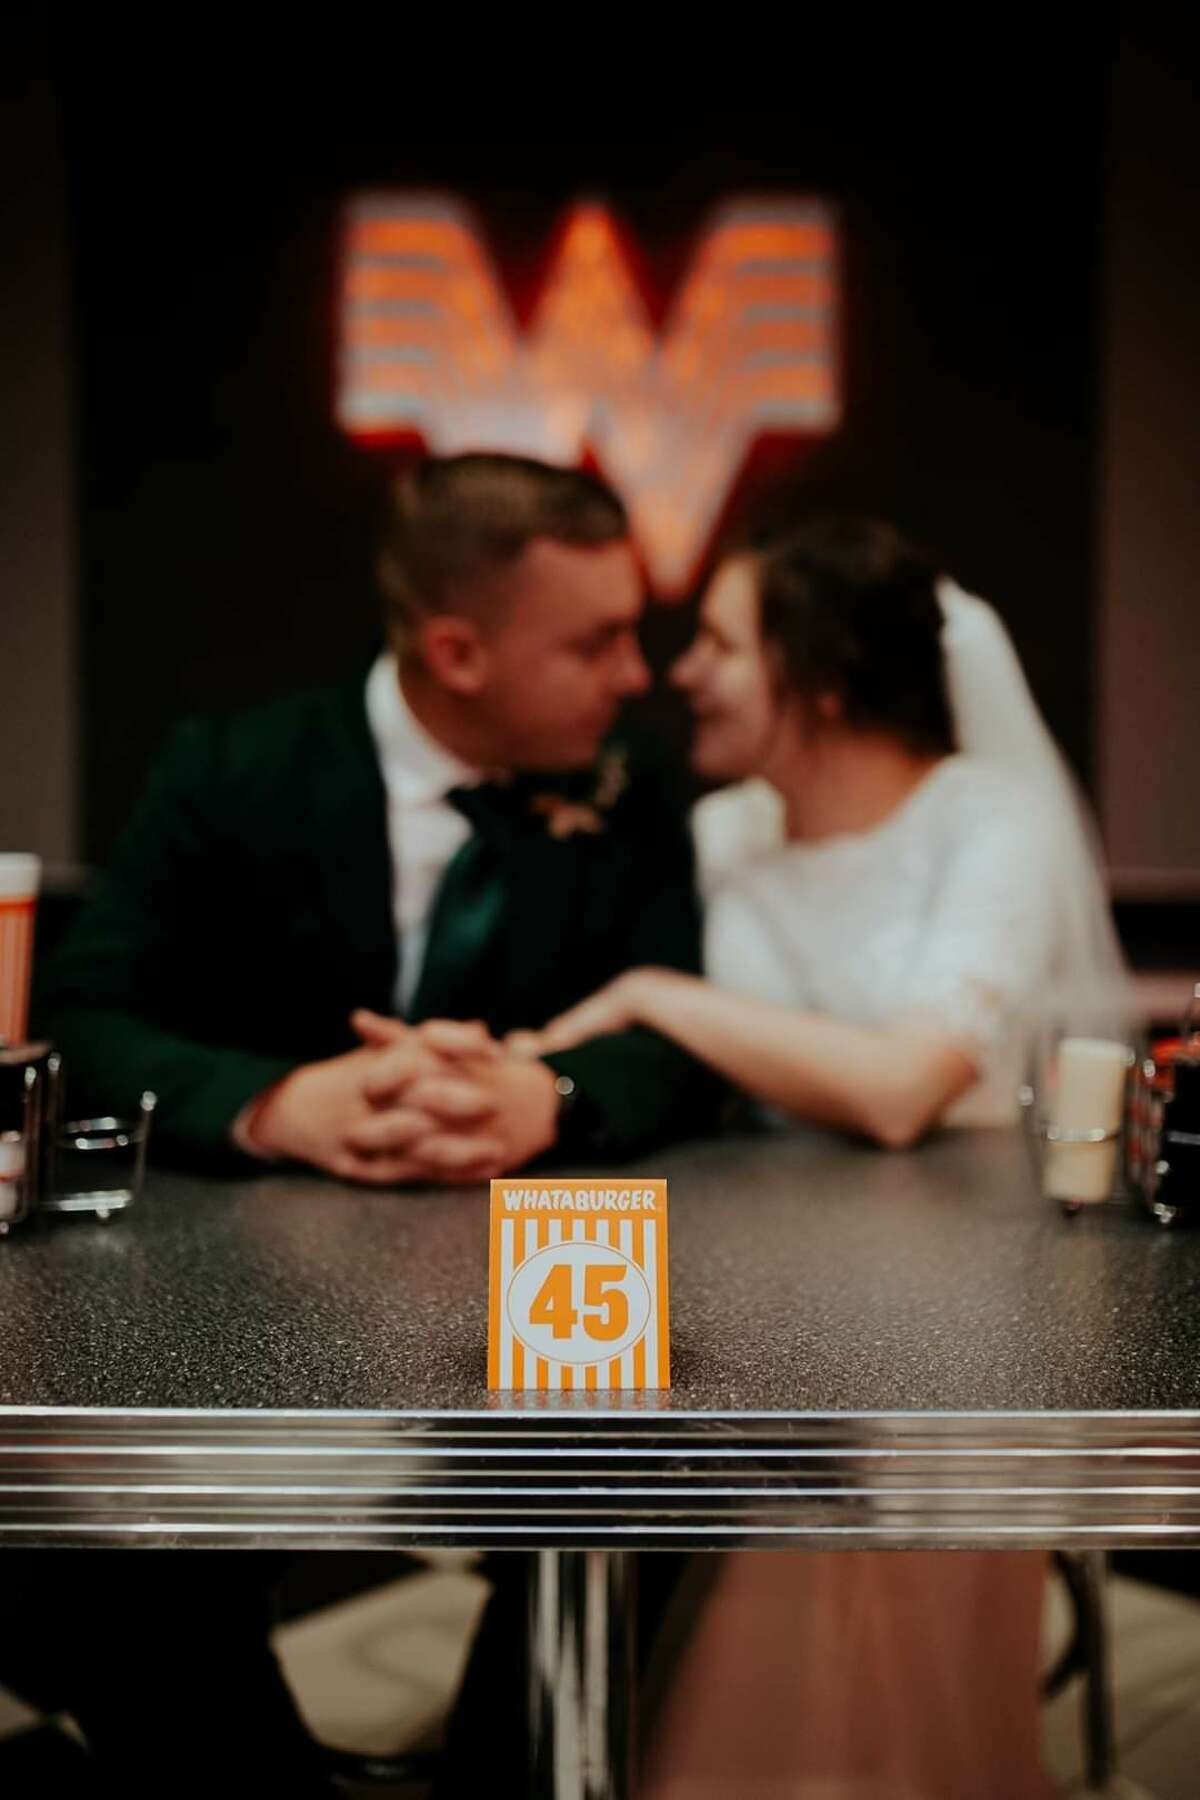 Three years after meeting at Whataburger, a couple from Tyler returned to the fast-food chain on their wedding day to remember where it all started.